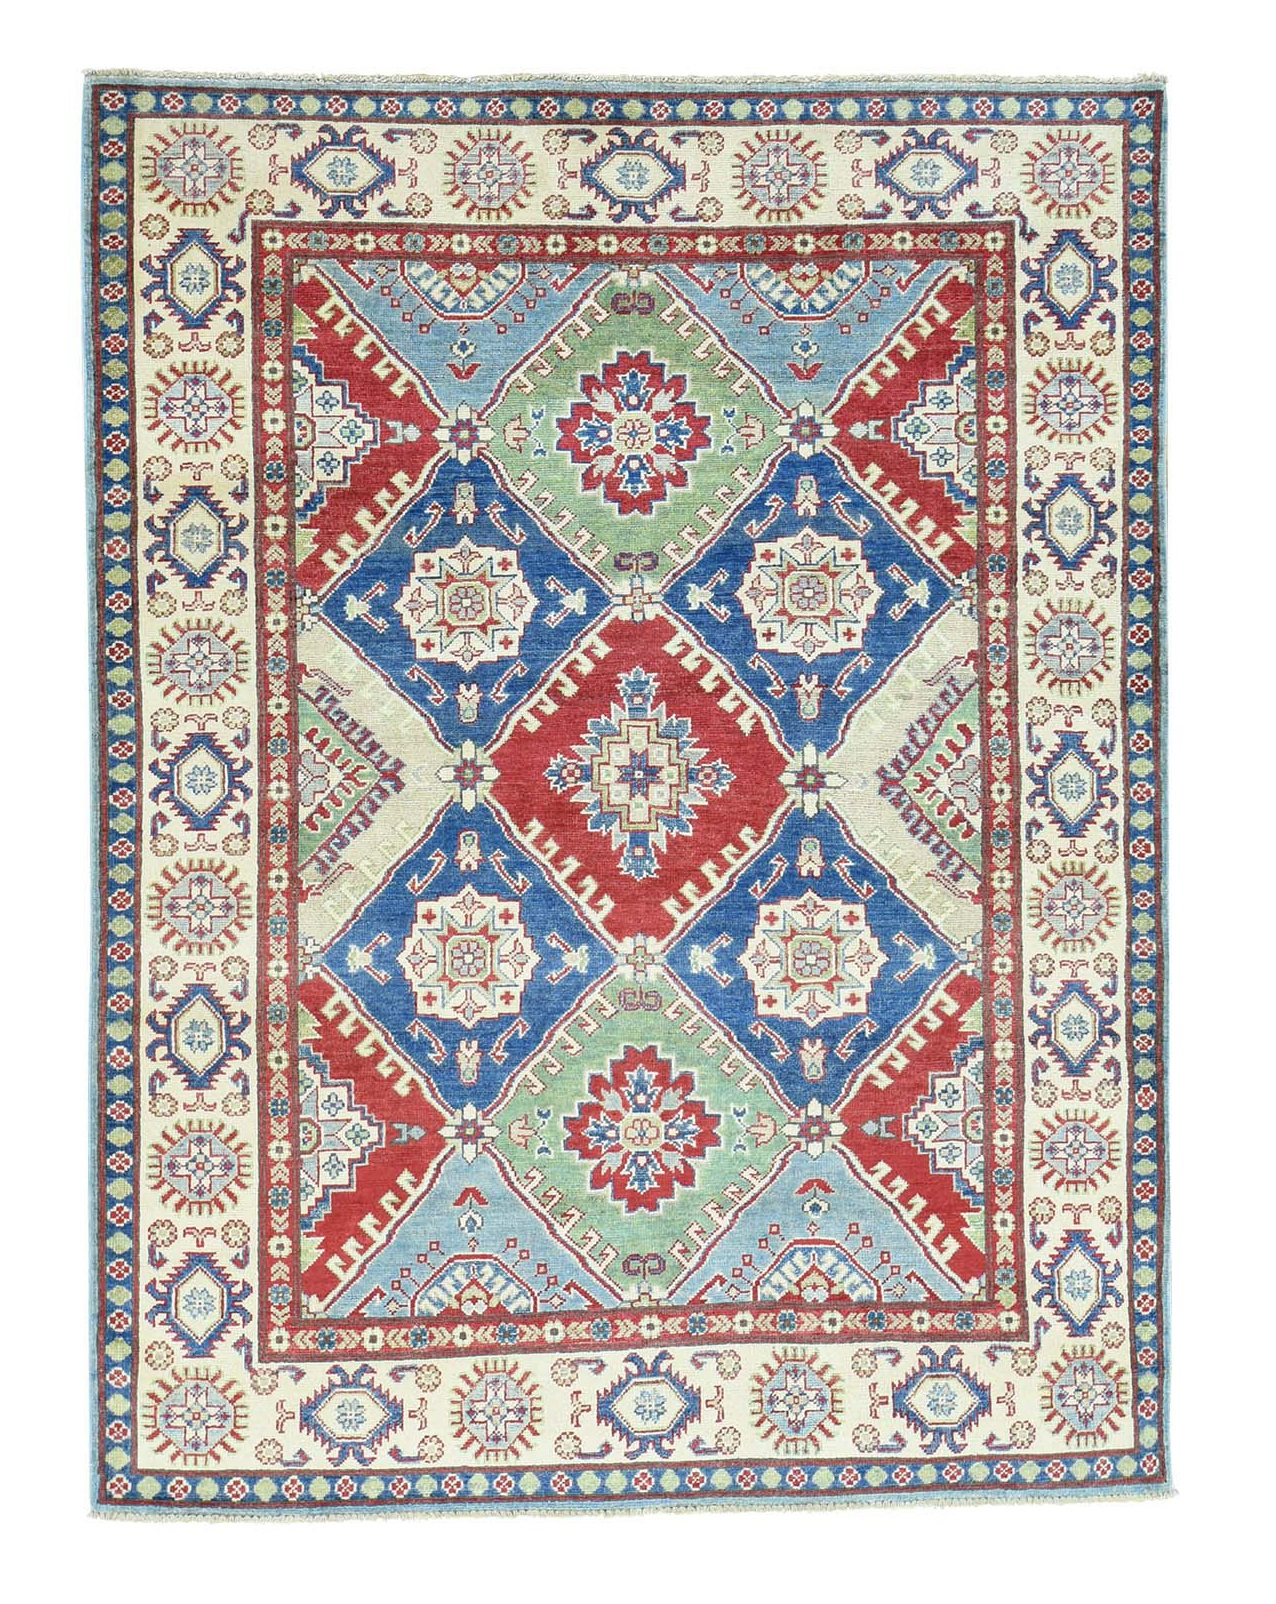 Tribal 5'4x7'1 Hand-Knotted Kazak Tribal And Geometric Design Pure Wool Rug